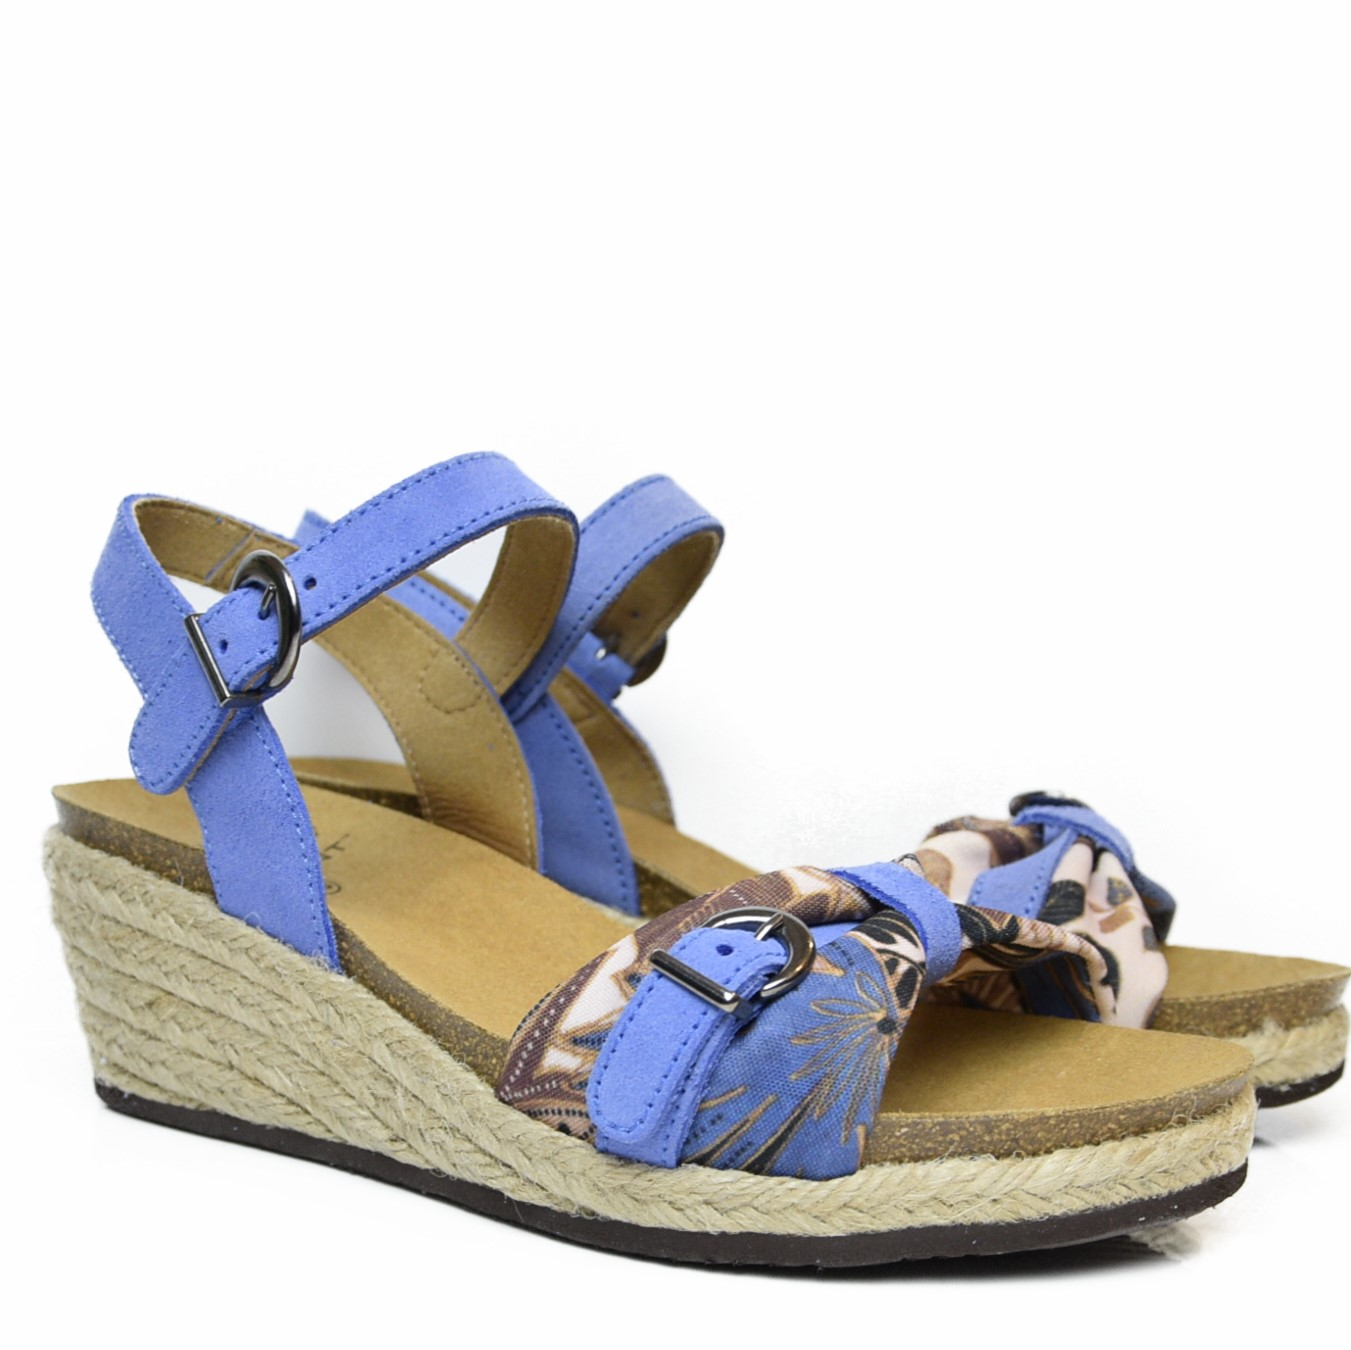 Vale Blu Nvwm0on8 Flower Fantasy Woman Sandal Scholl f7yvYb6g